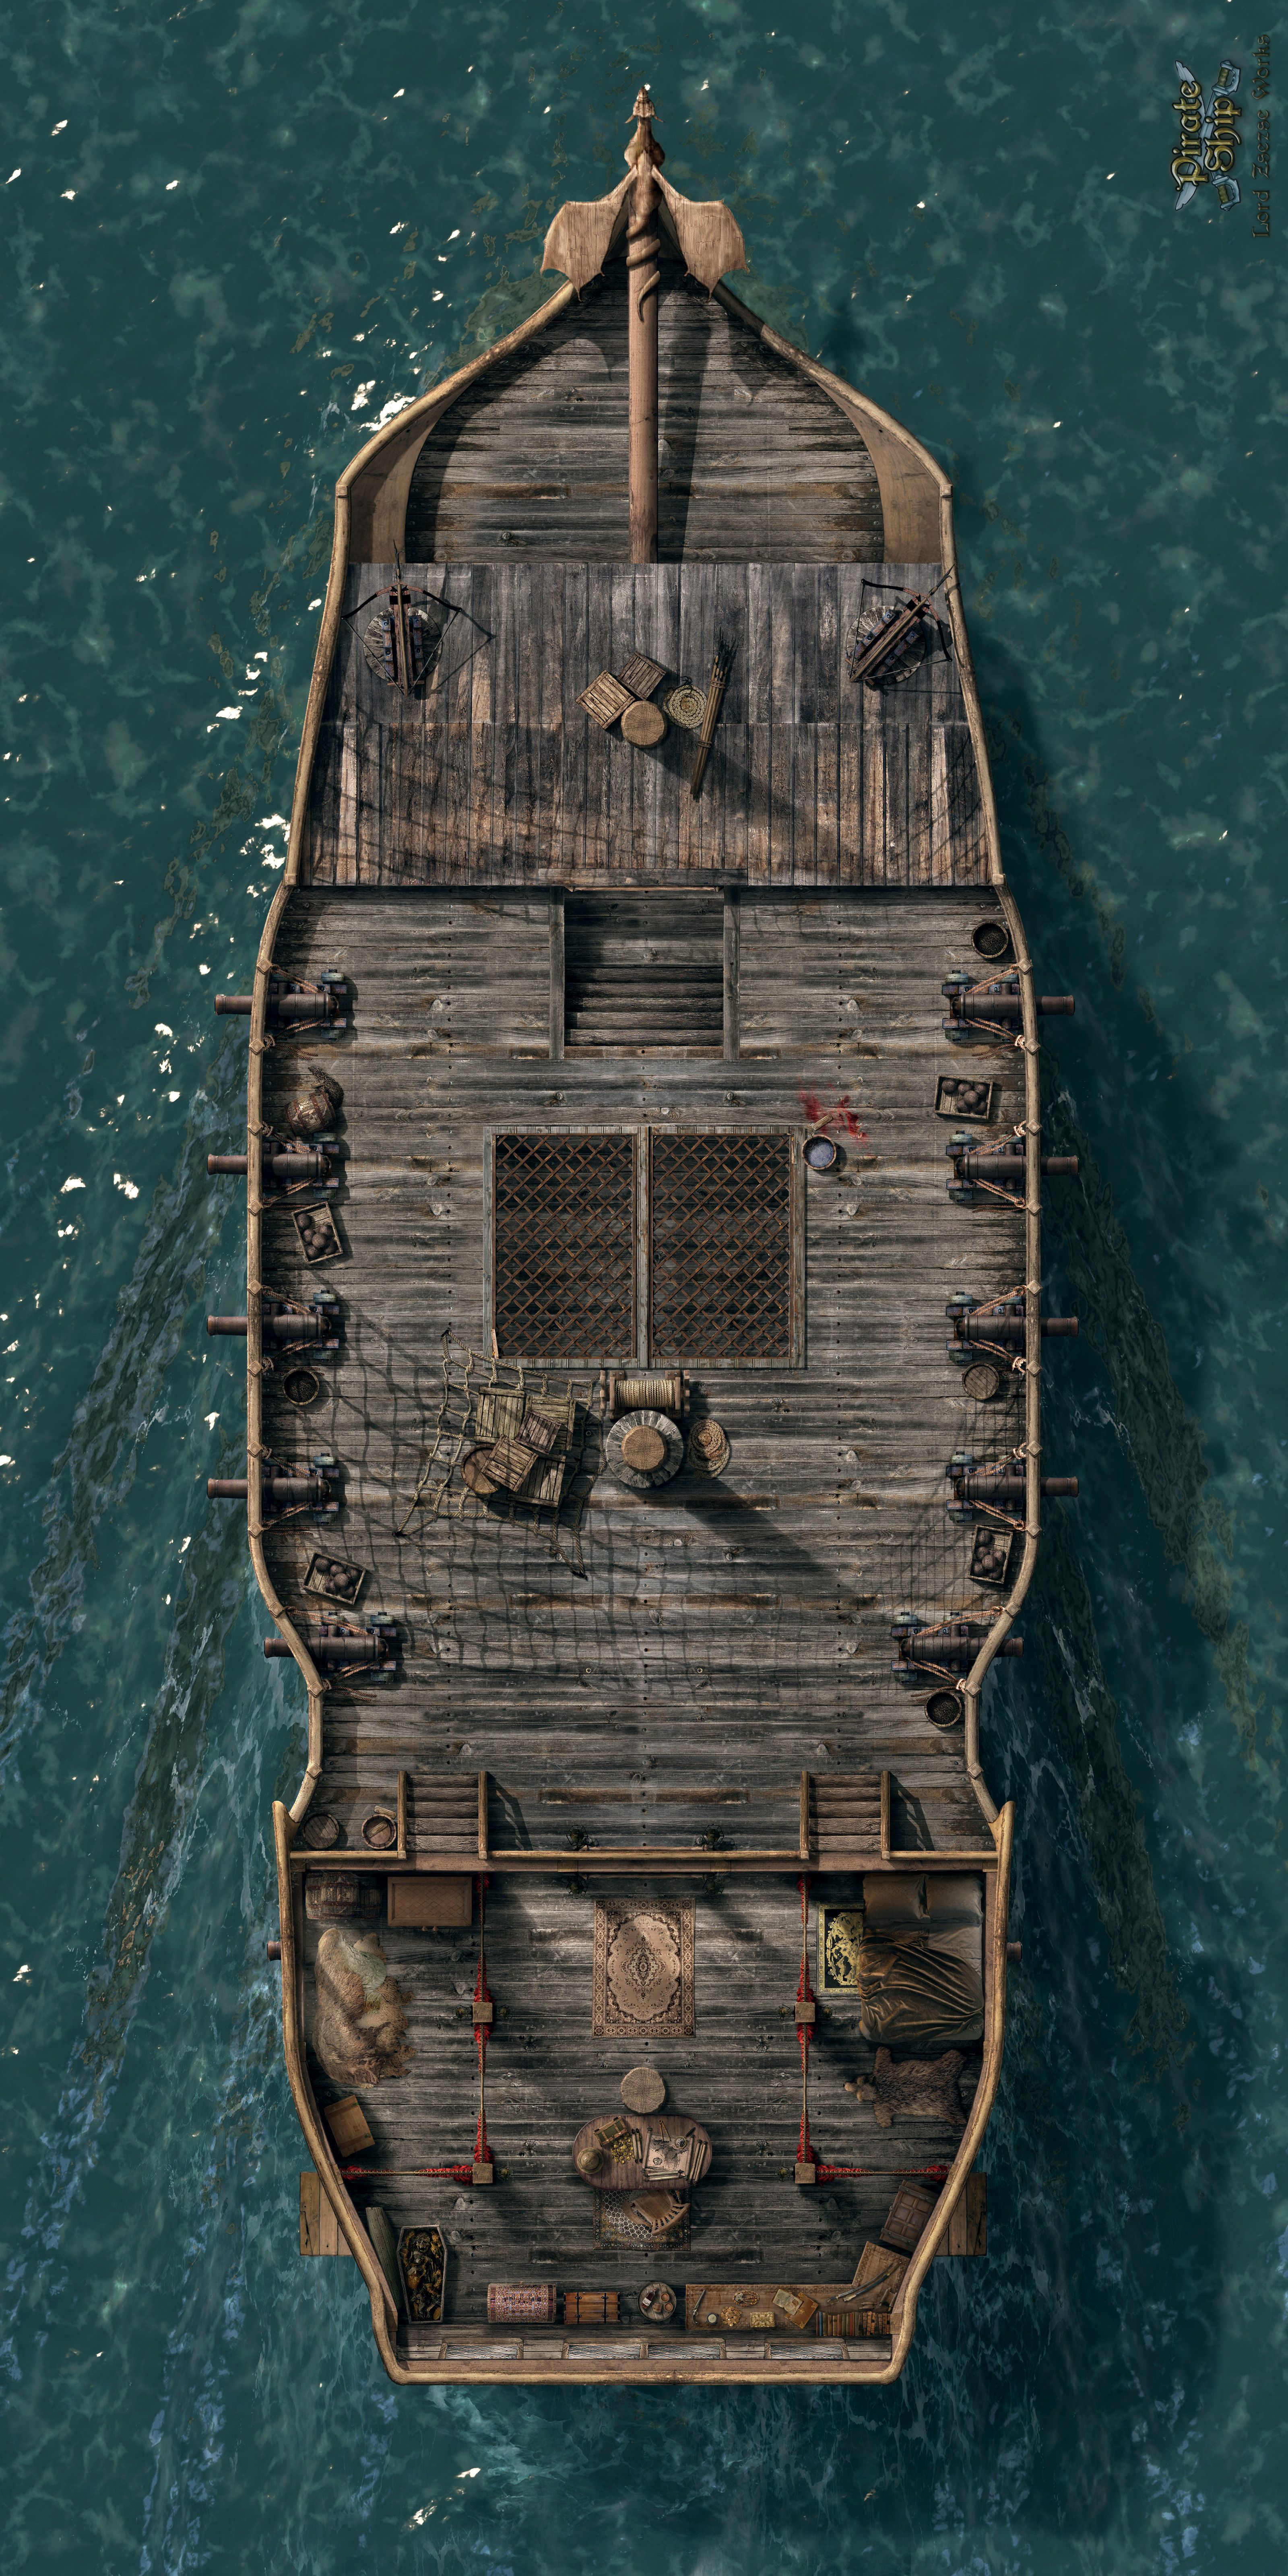 Its a pirate ship 1 of 4 RPG Reference Pinterest